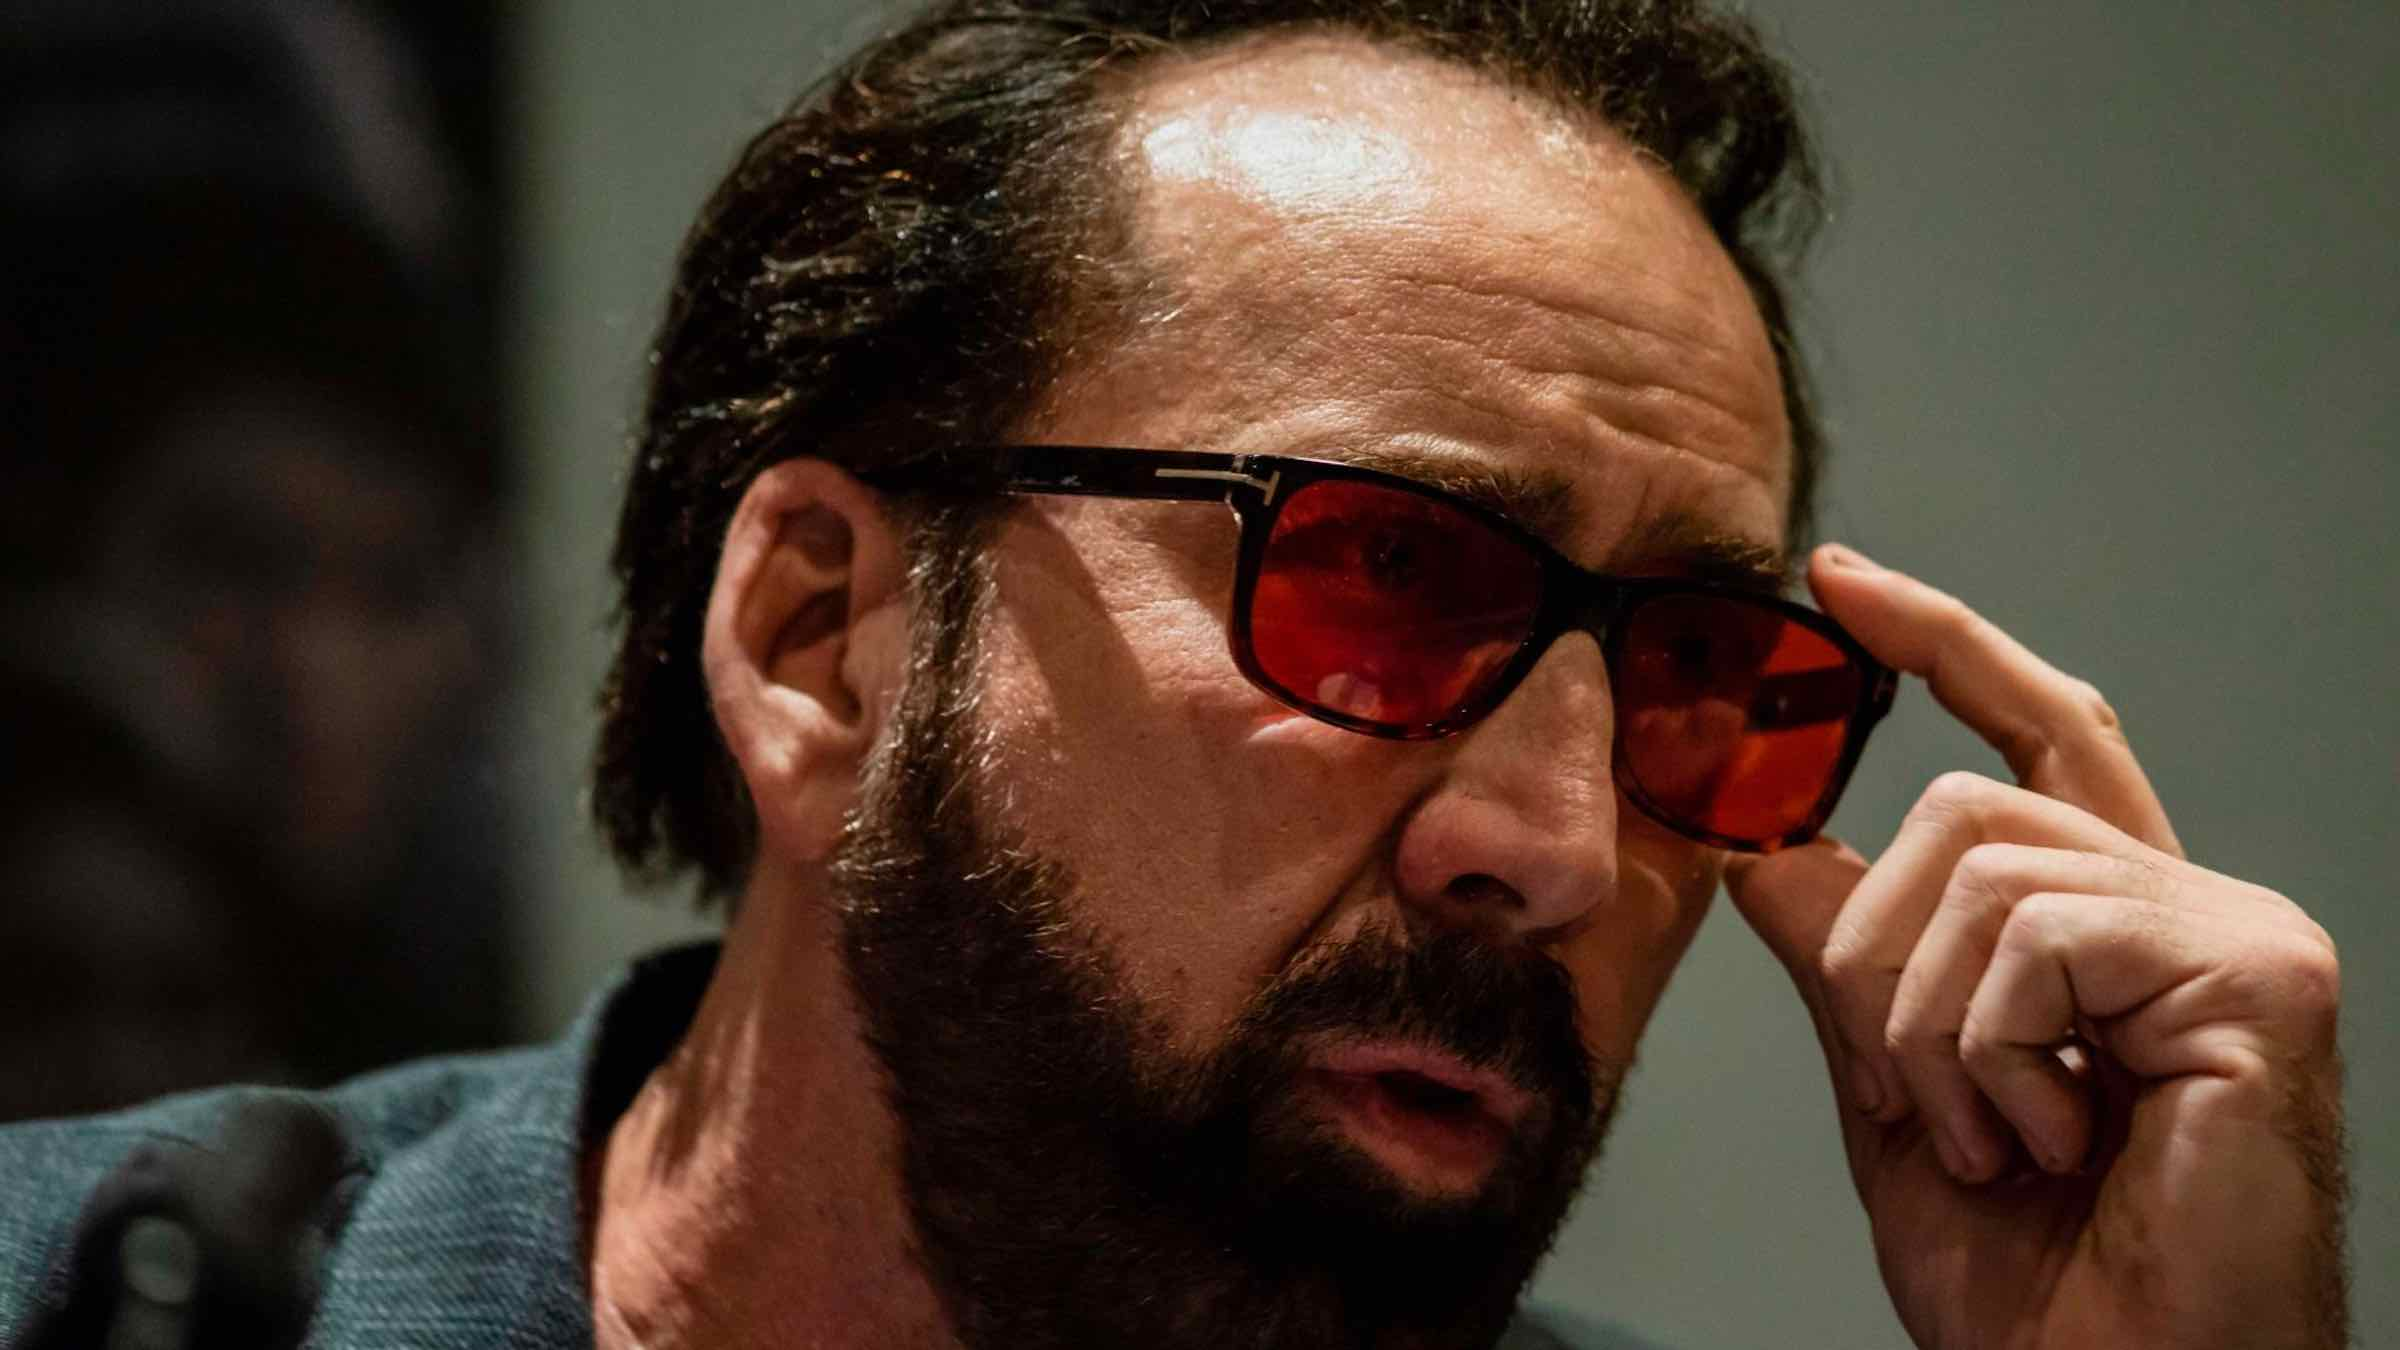 Nicolas Cage plays himself in 'The Unbearable Weight of Massive Talent'. Here's everything we know about the upcoming film.